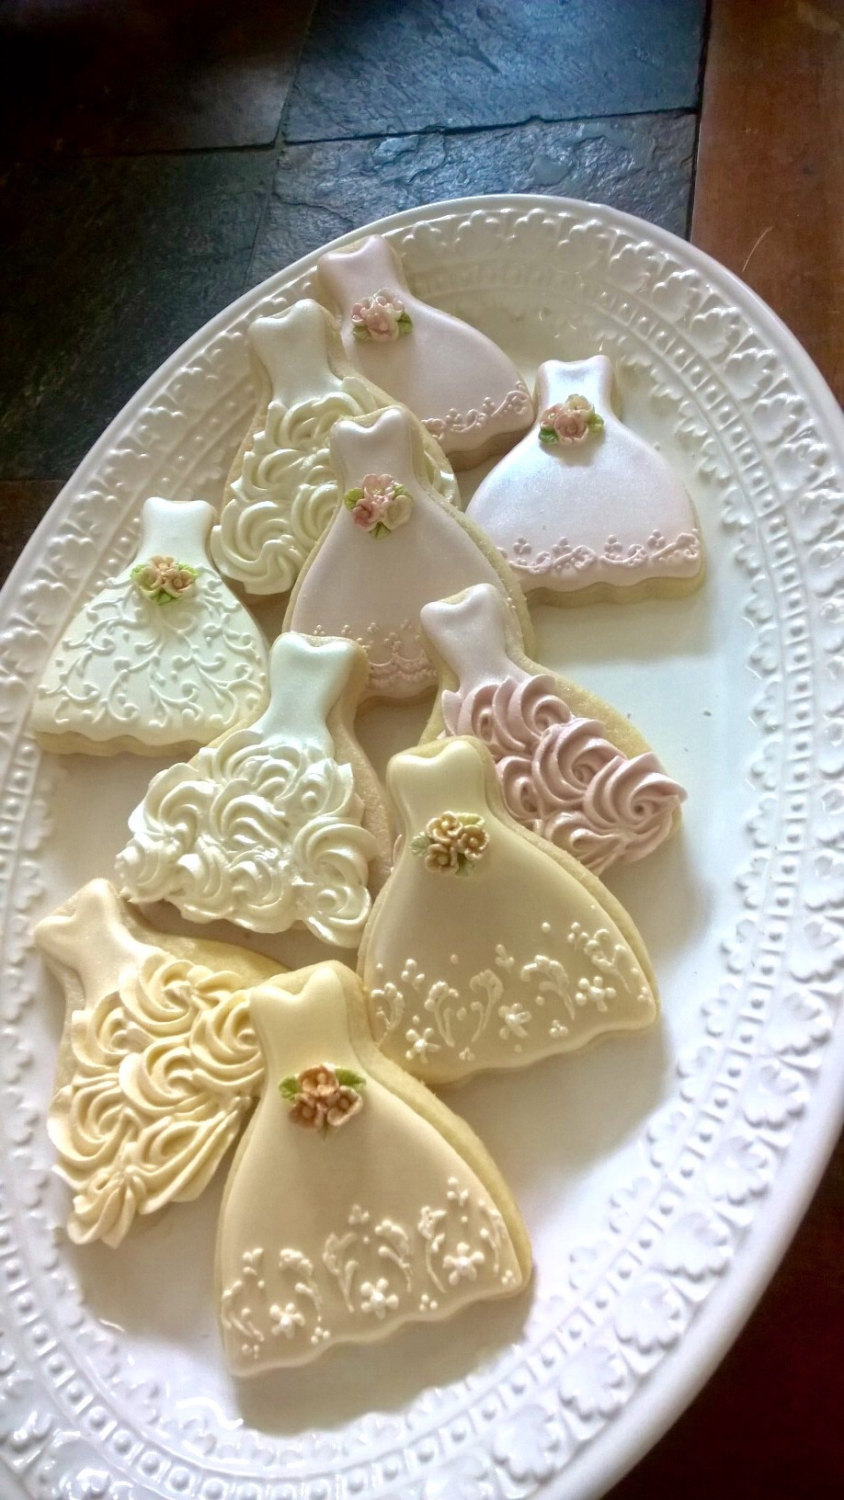 100 Pieces Petite Sized Wedding Dress Cookies - Cookie Favors, Cookies, Bridal Shower Wedding Gown Cookies